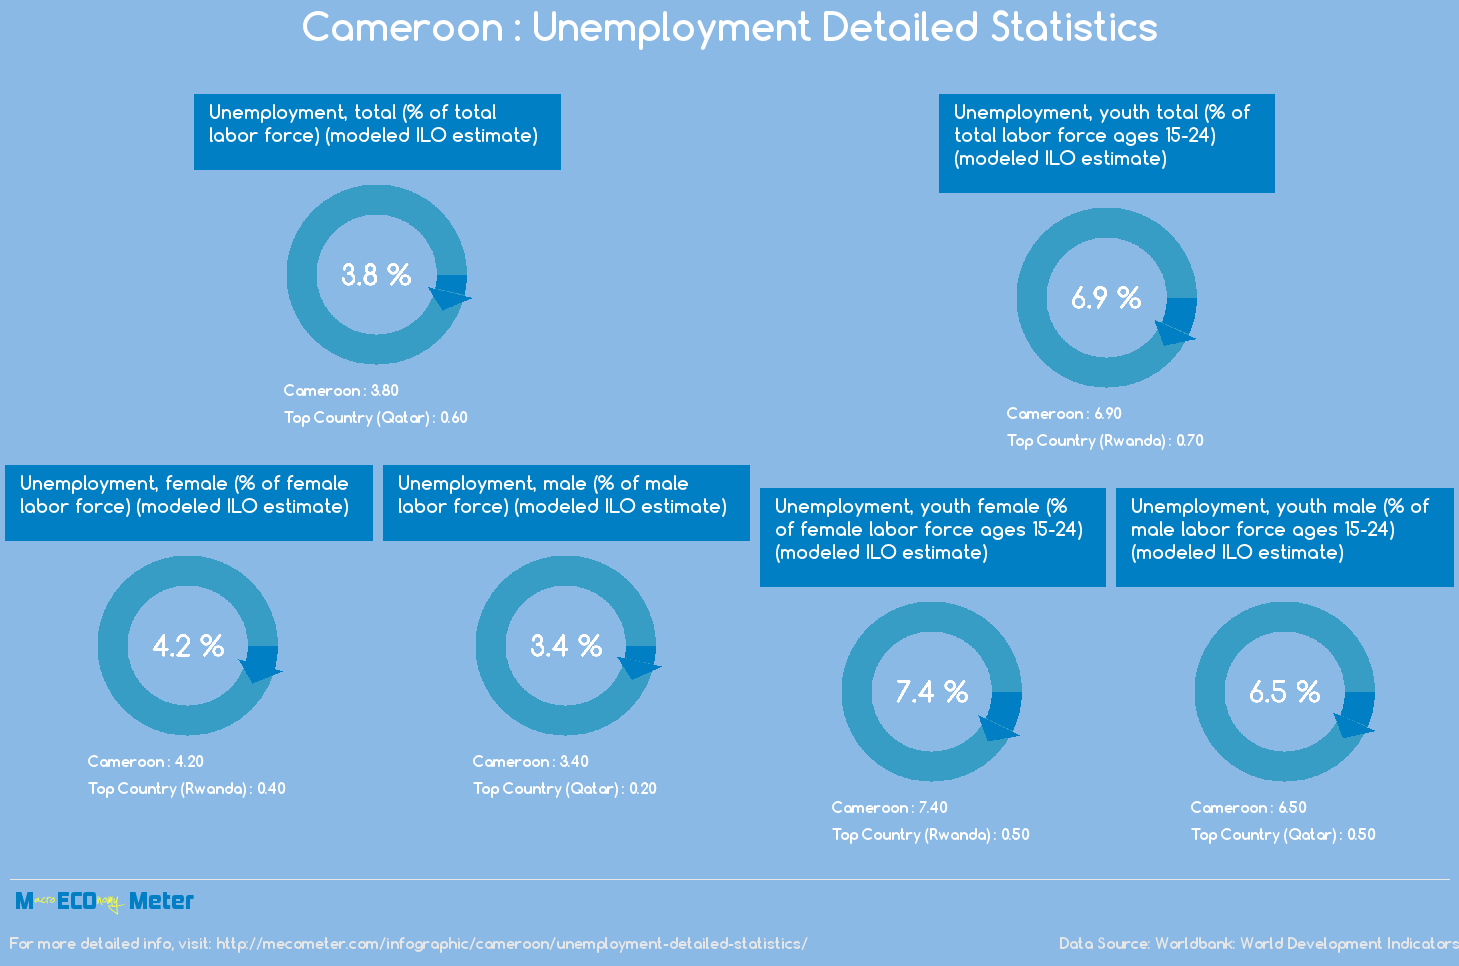 Cameroon : Unemployment Detailed Statistics